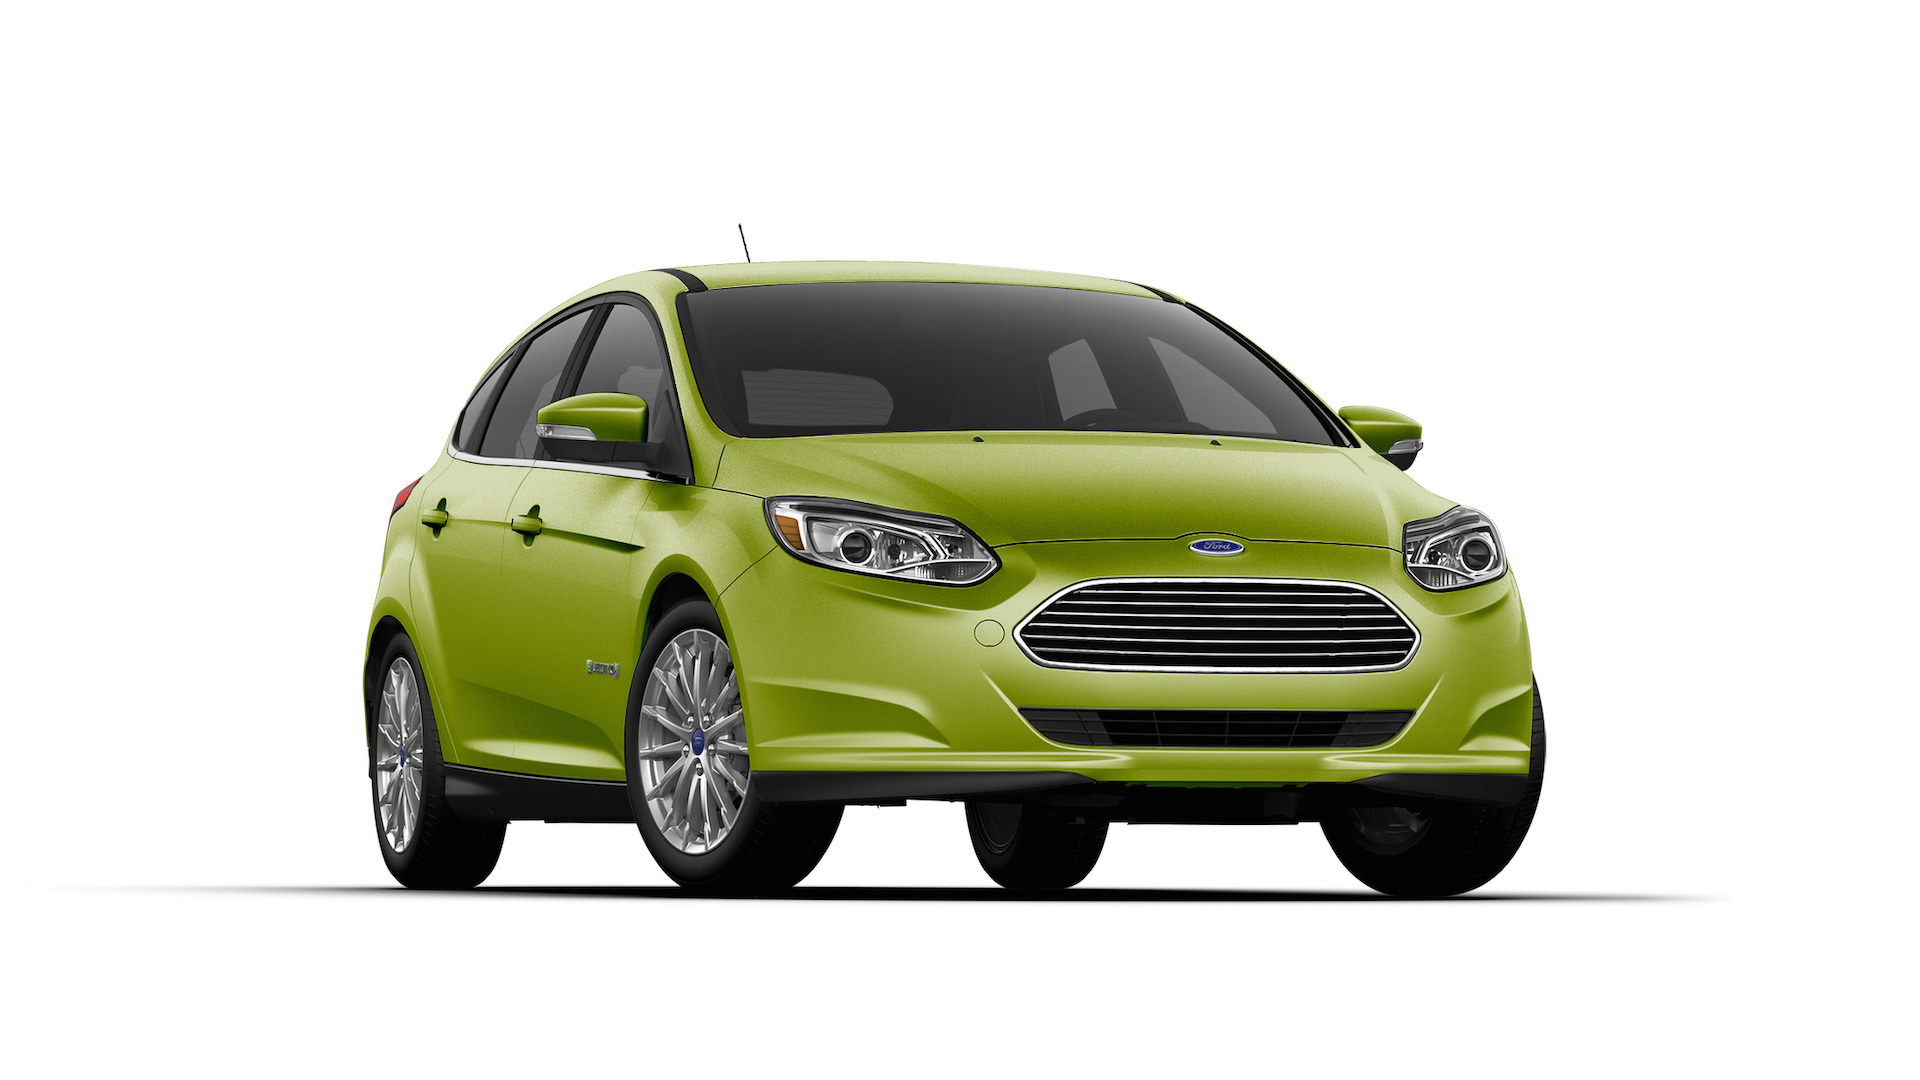 ford focus electric gets gaudy green paint job for st patrick 39 s day. Black Bedroom Furniture Sets. Home Design Ideas